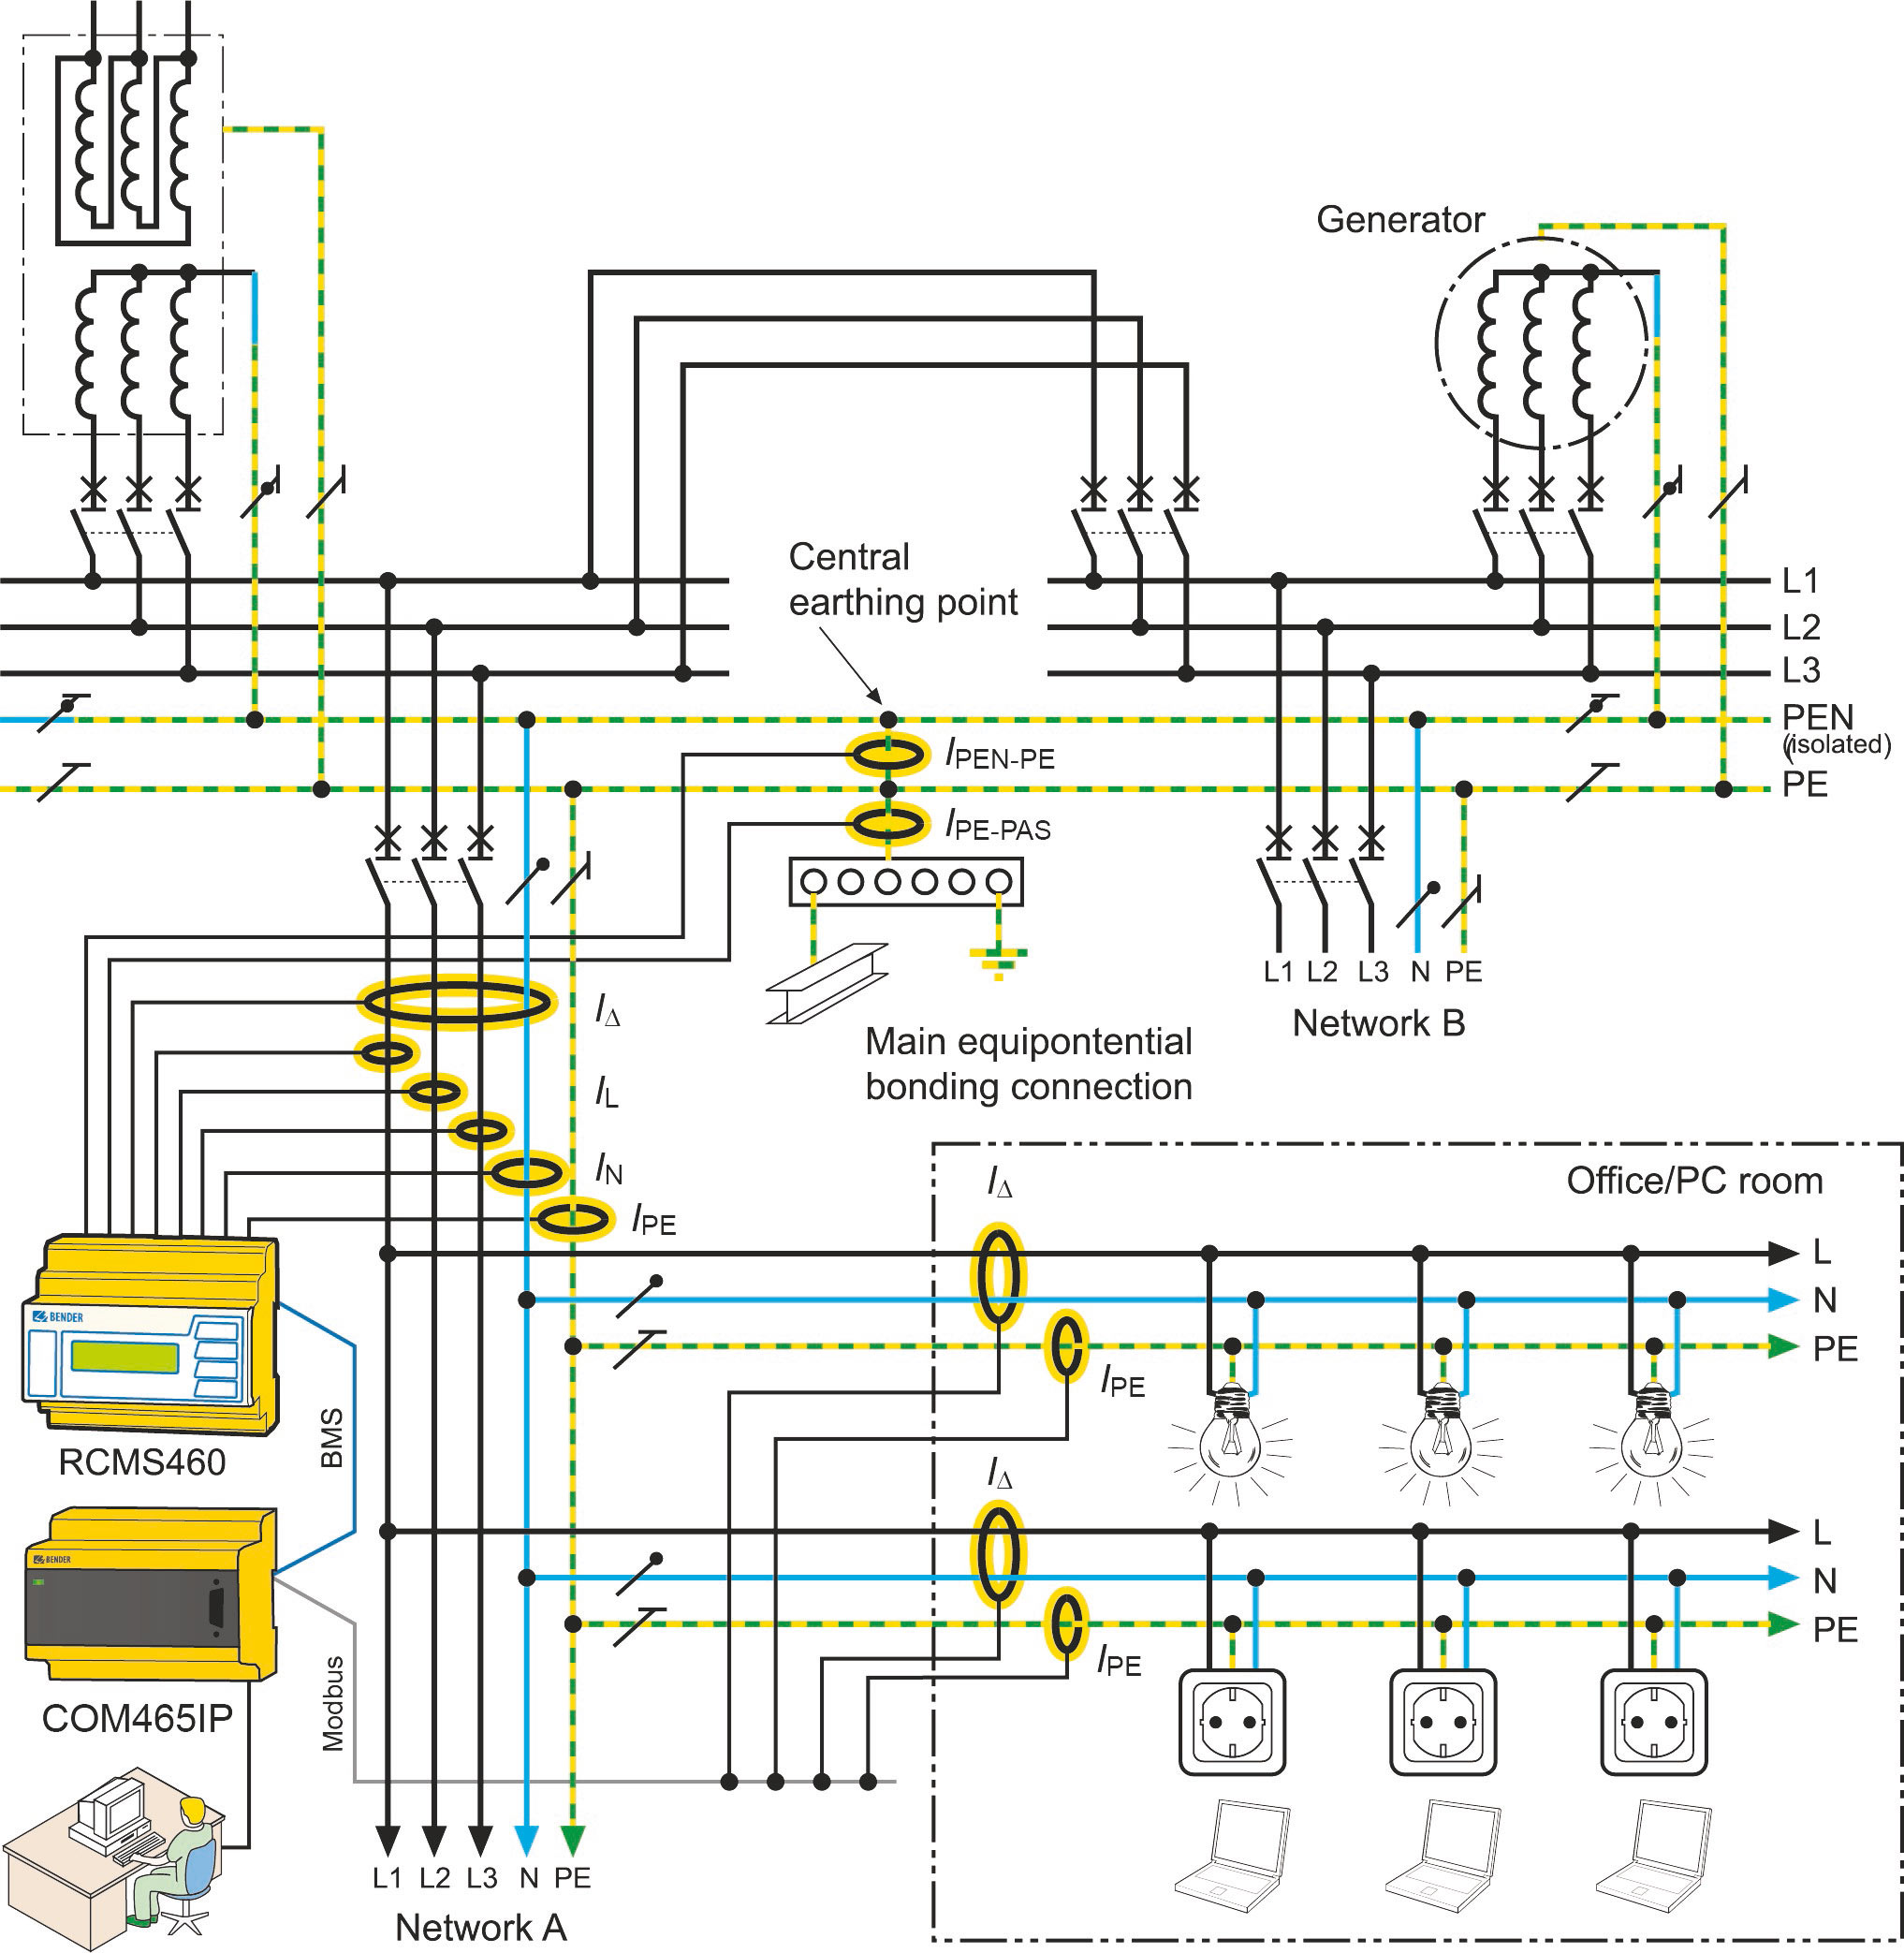 Schematic diagram of power supply monitoring